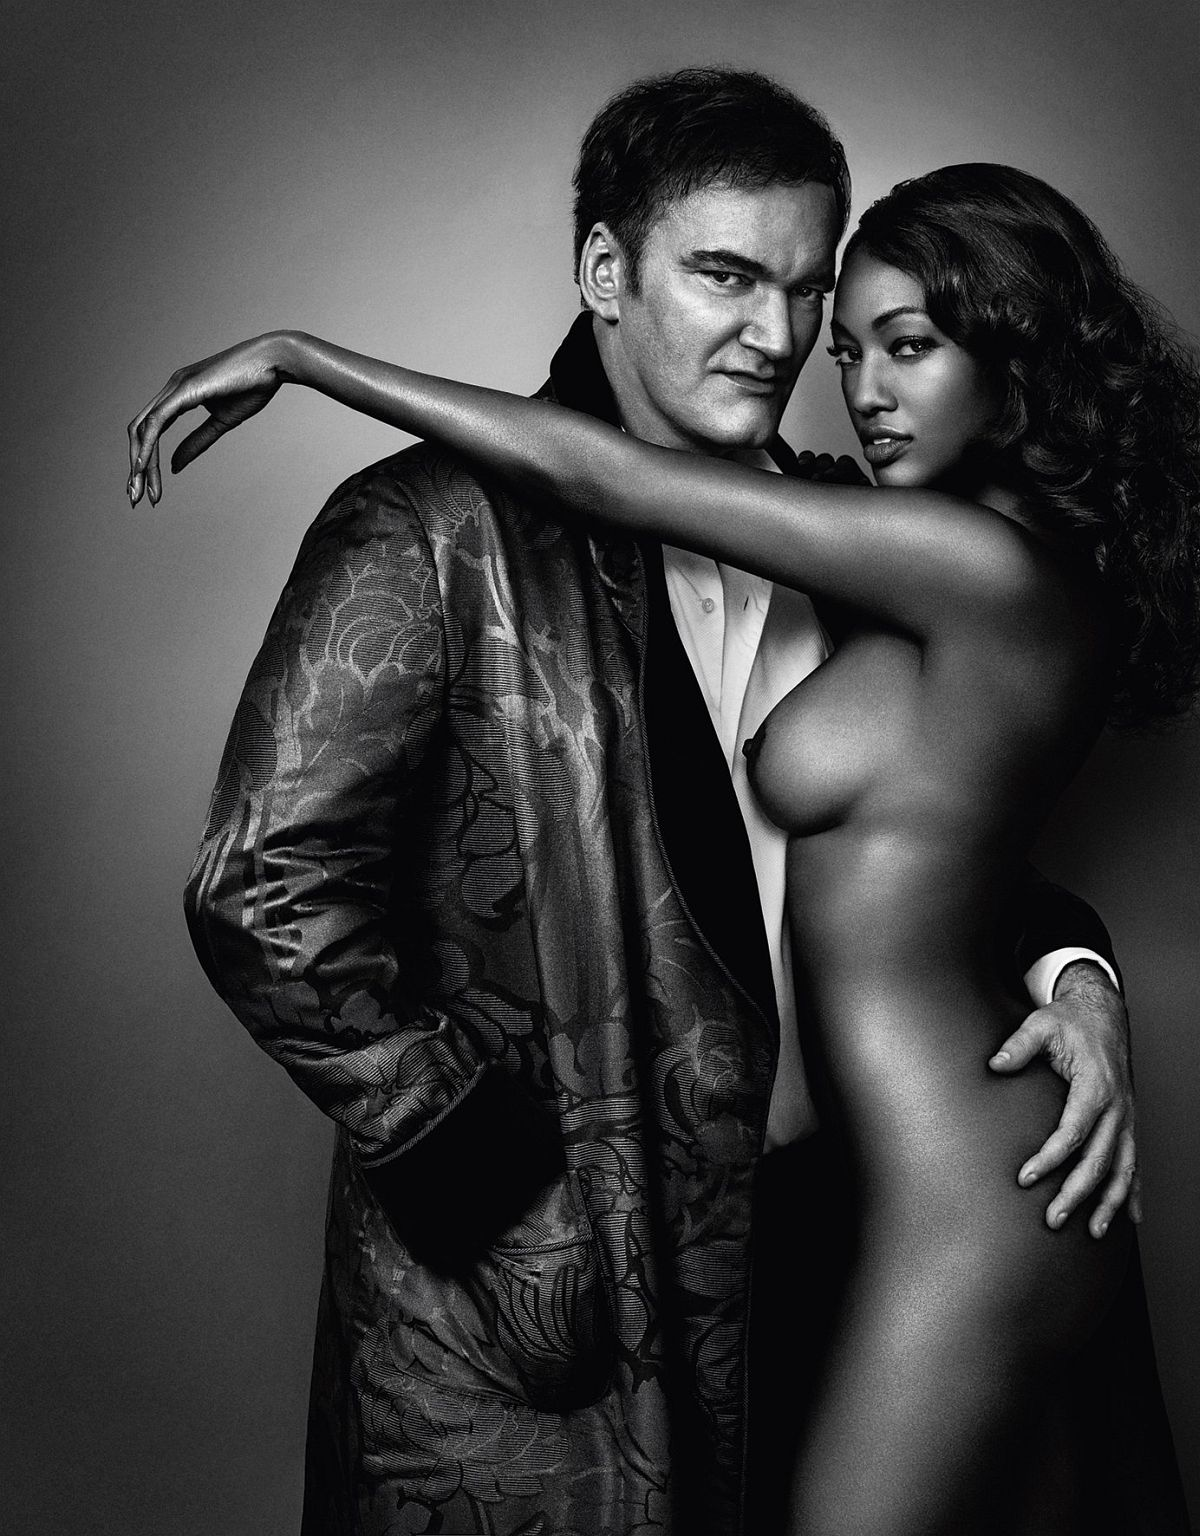 © Profiles by Marc Hom, published by teNeues, www.teneues.com, Quentin Tarantino and Nichole Galicia, Photo © 2016 Marc Hom